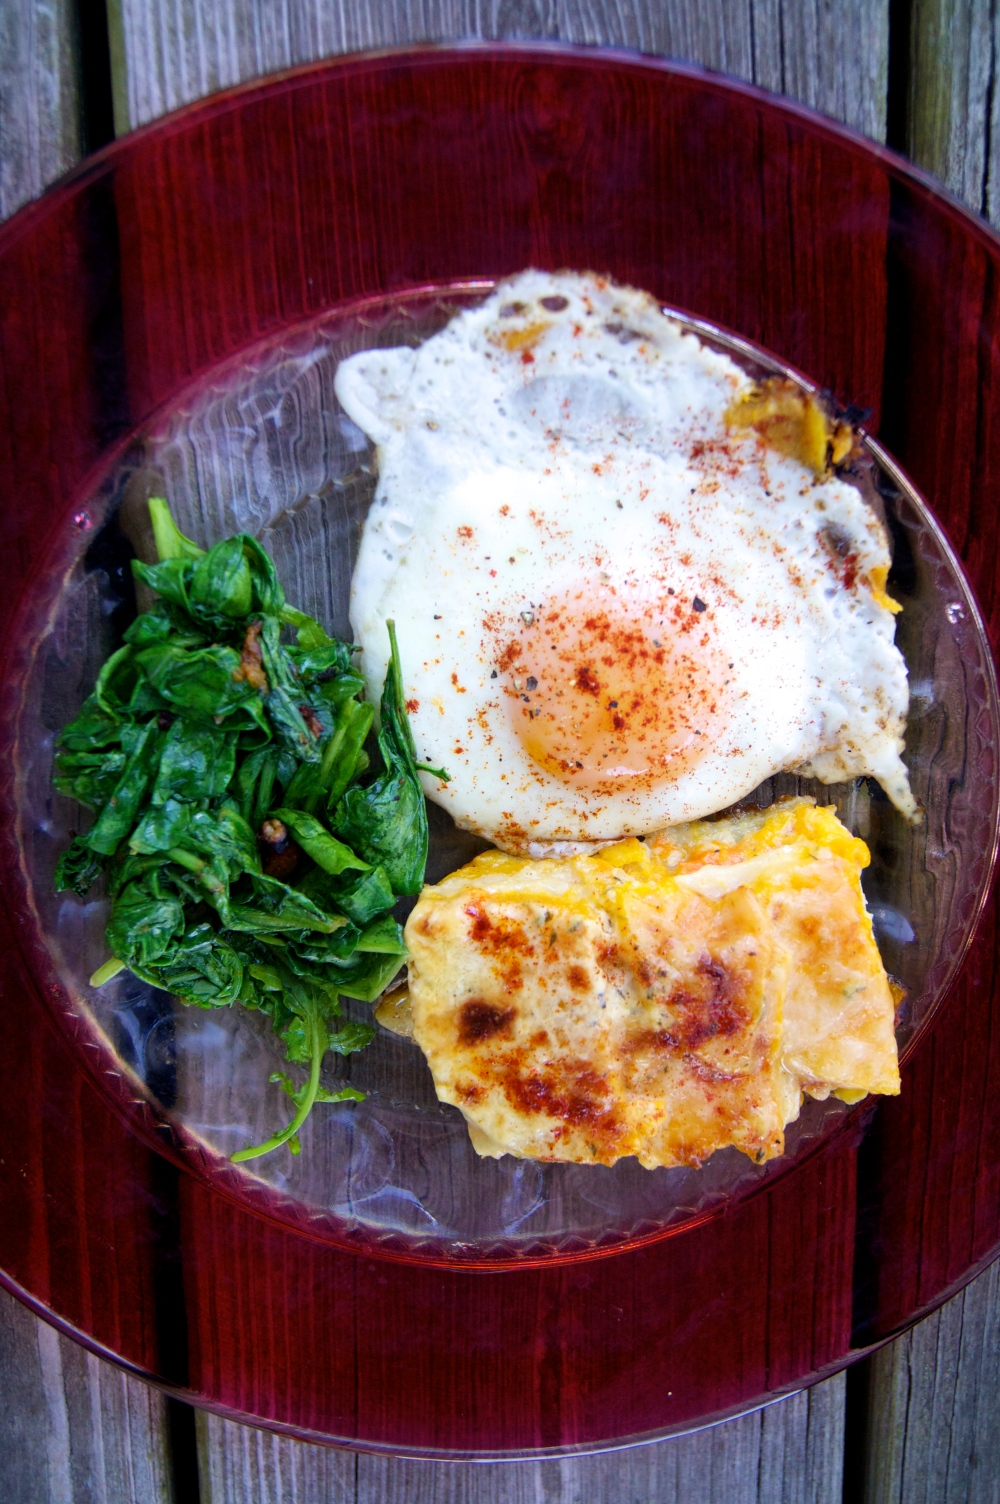 butternut squash and celery root gratin with rocket and a fried egg